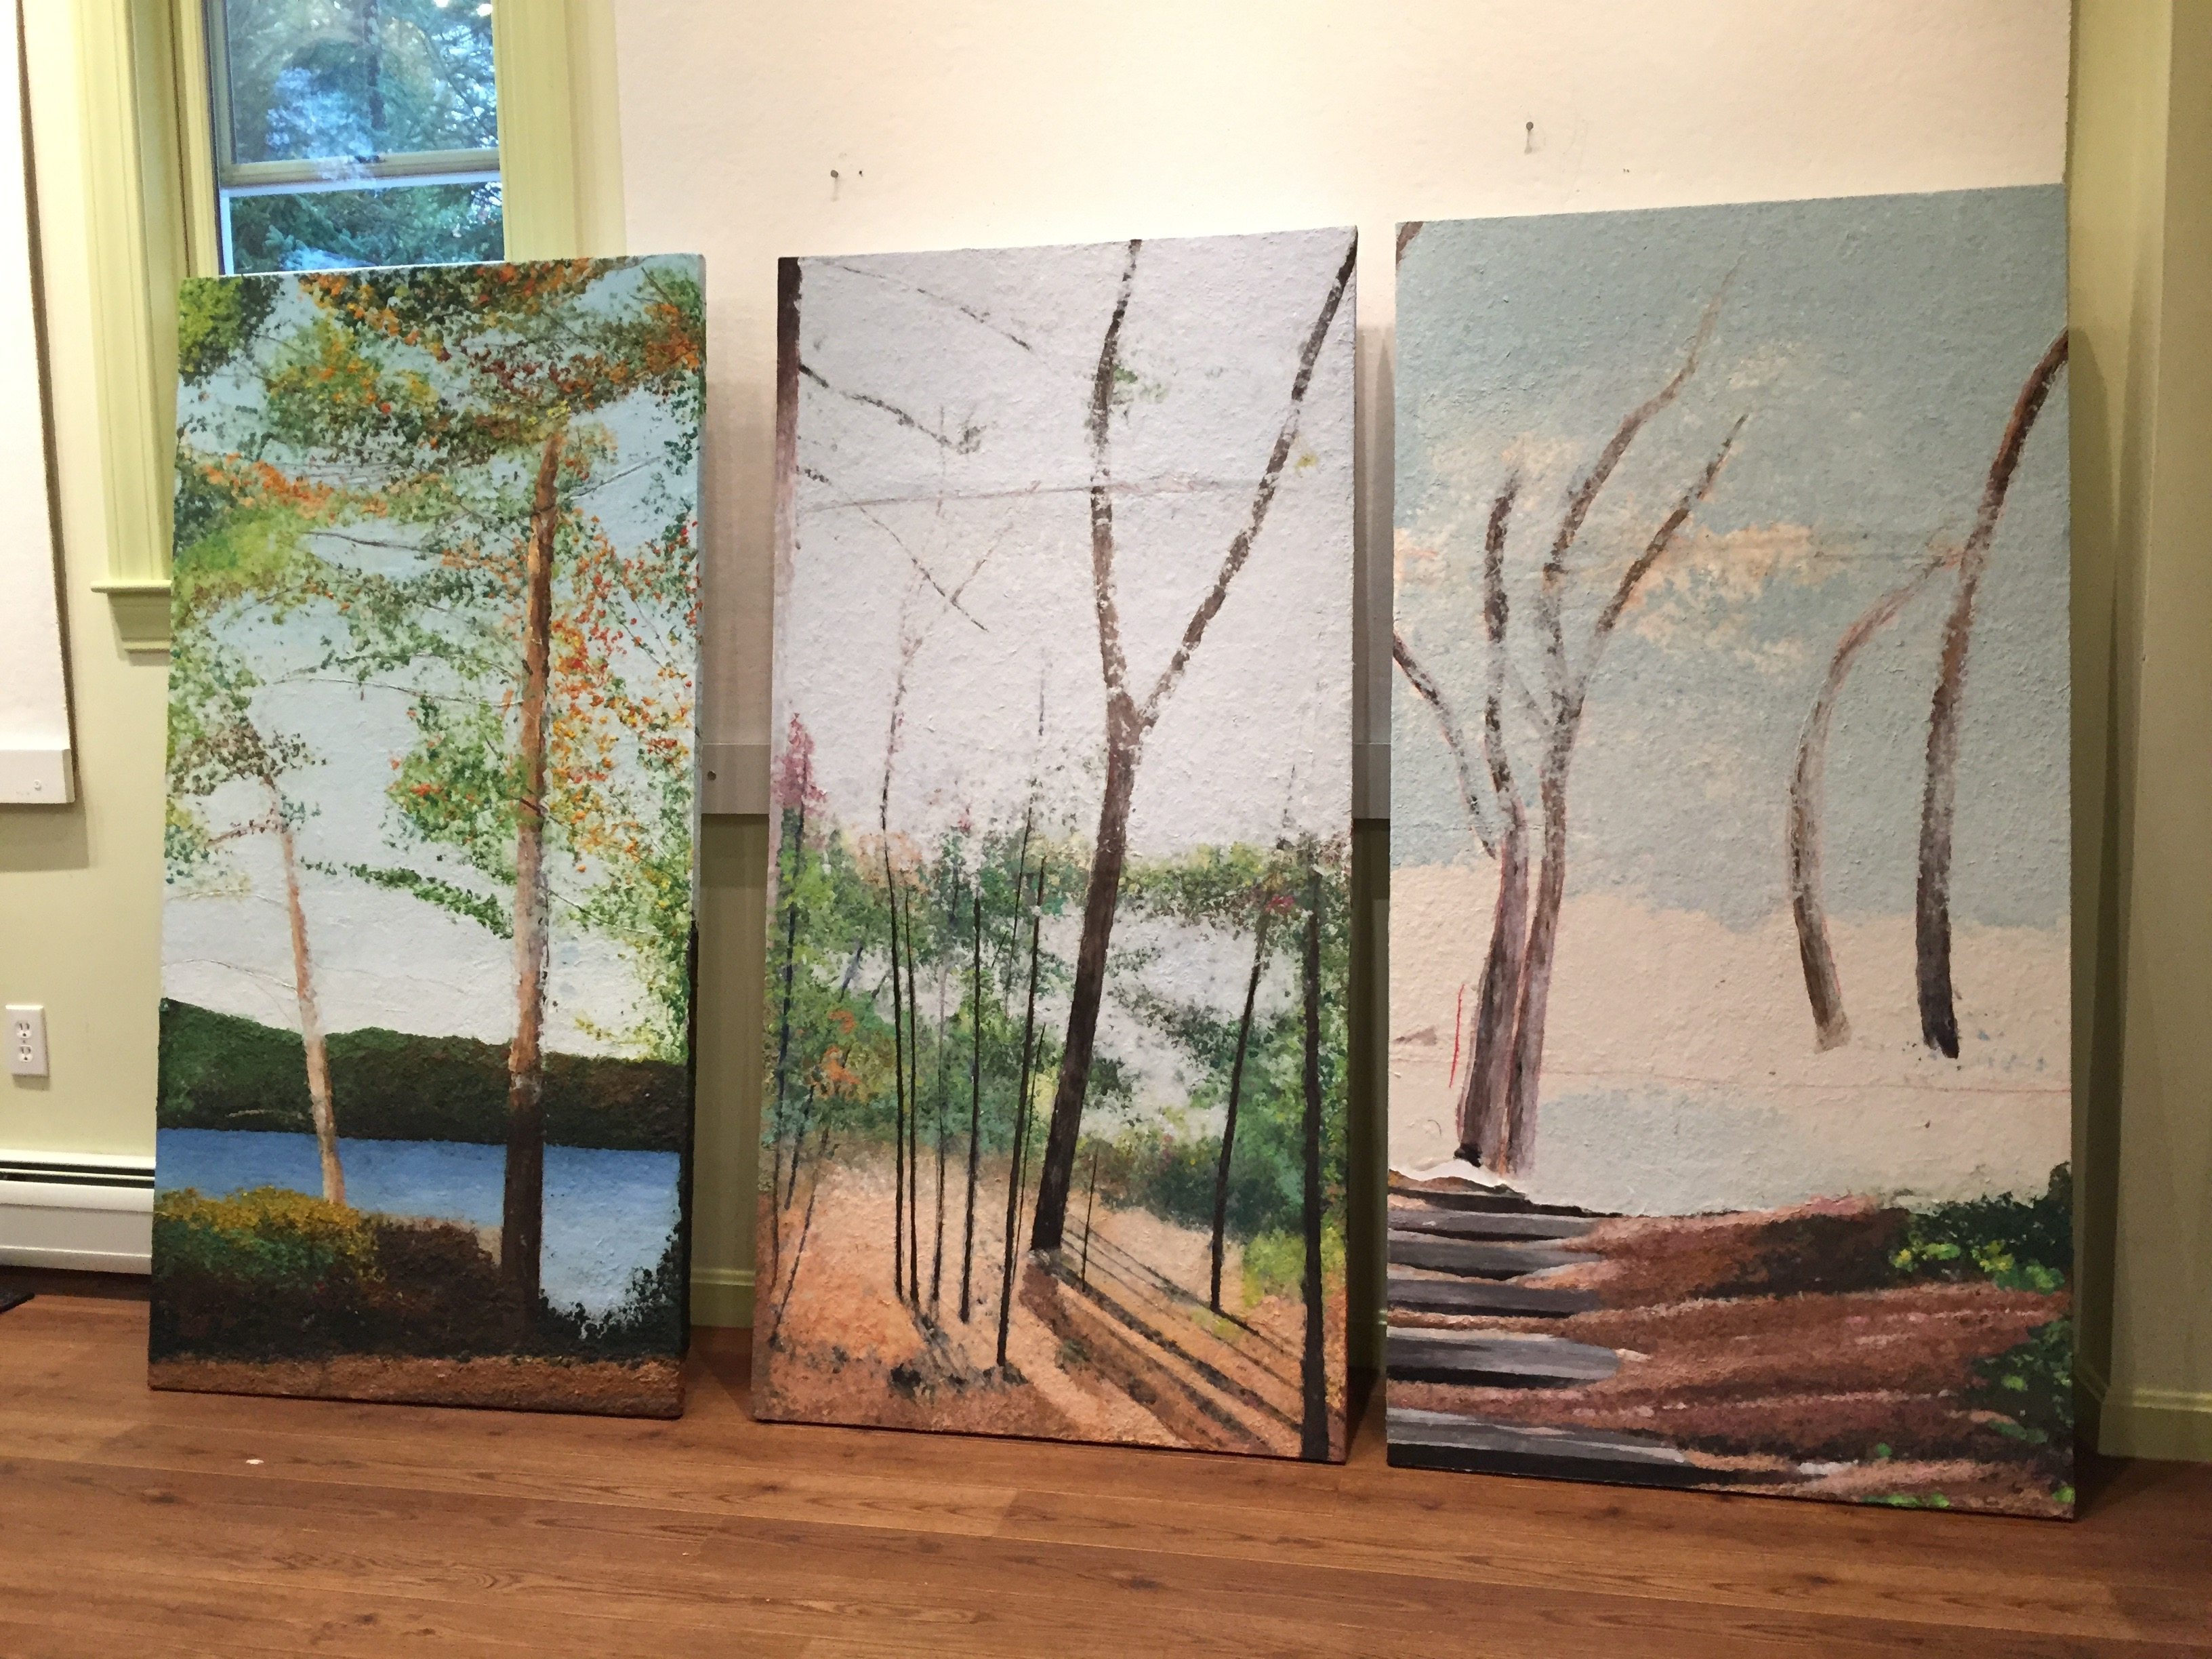 Care Dimensions Commission: The in-progress paintings in my studio